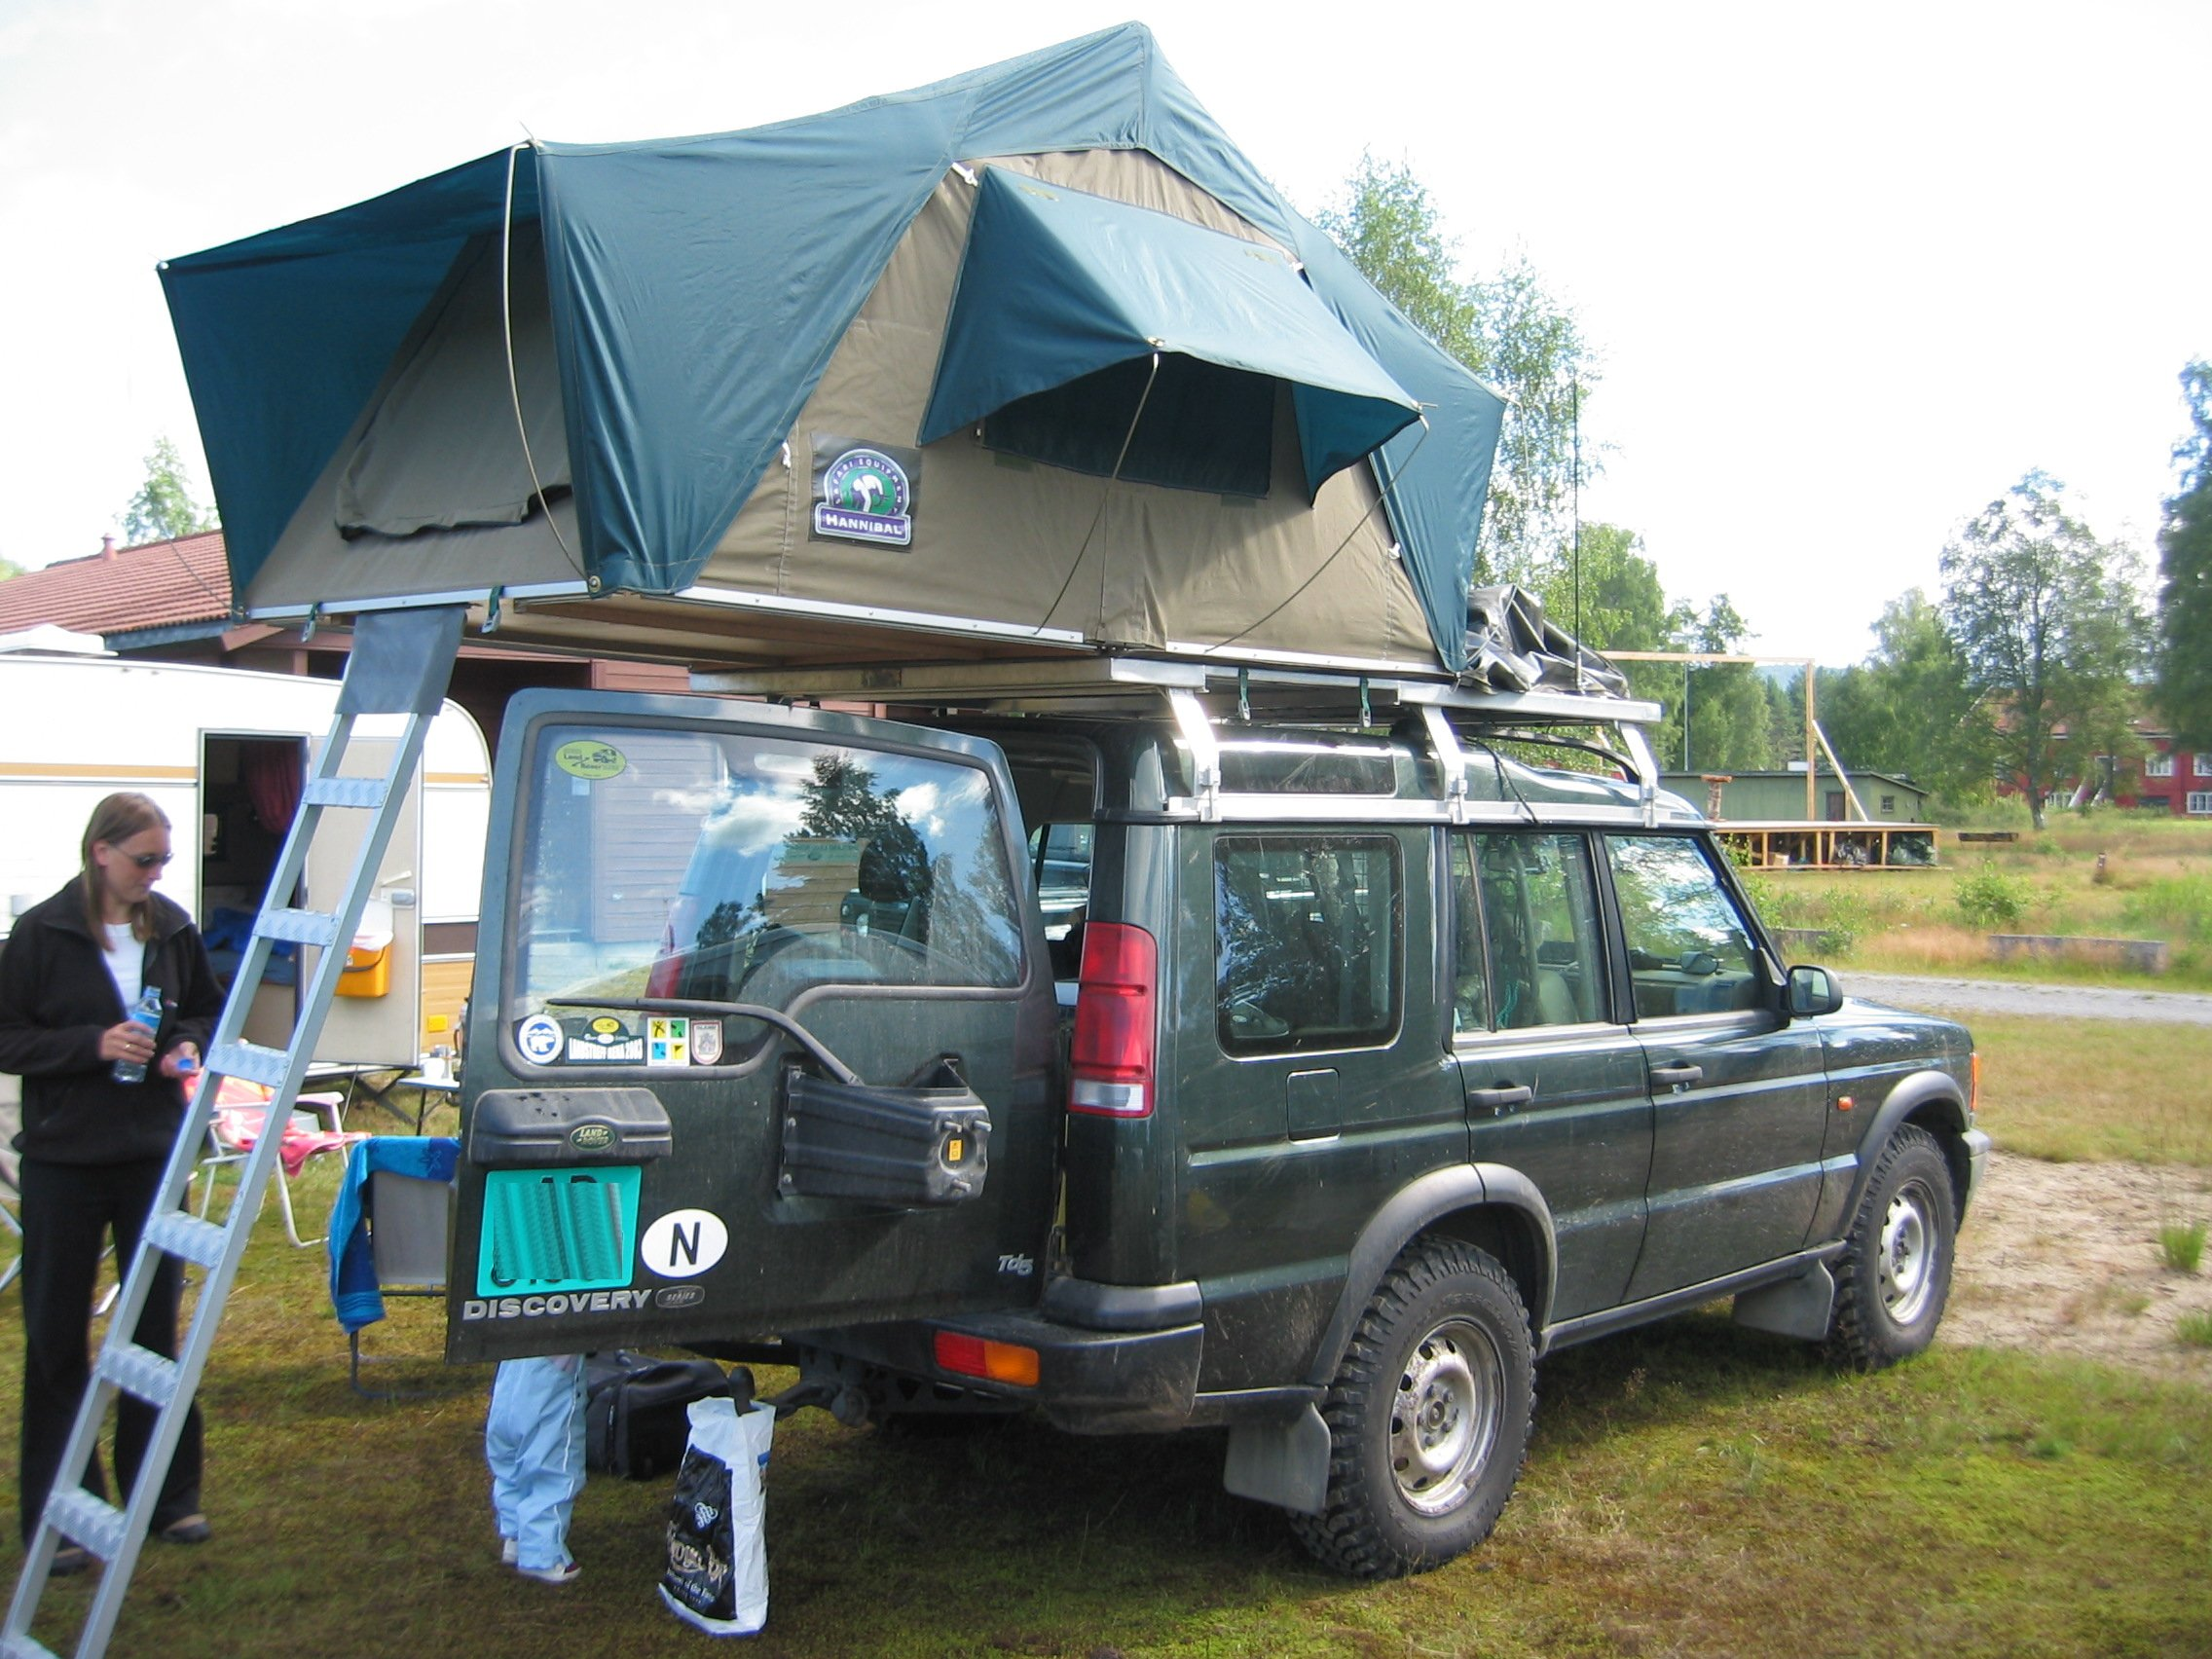 Land Rover Discovery 1 Expedition >> File:Hannibal roof tent.jpg - Wikimedia Commons